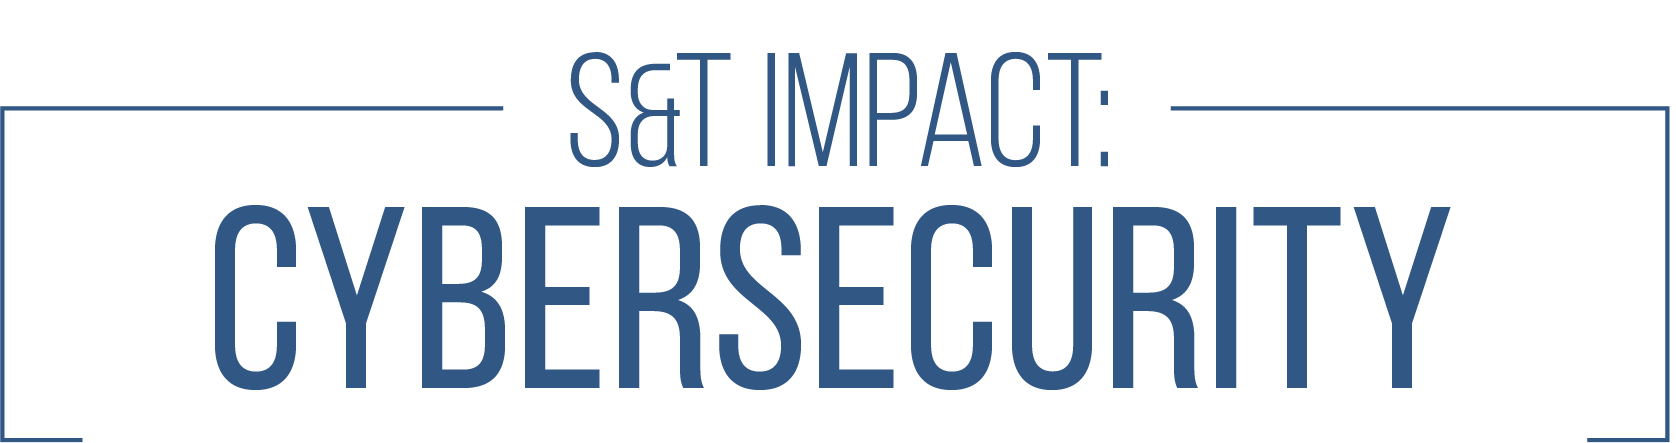 S&T Impact: Cybersecurity